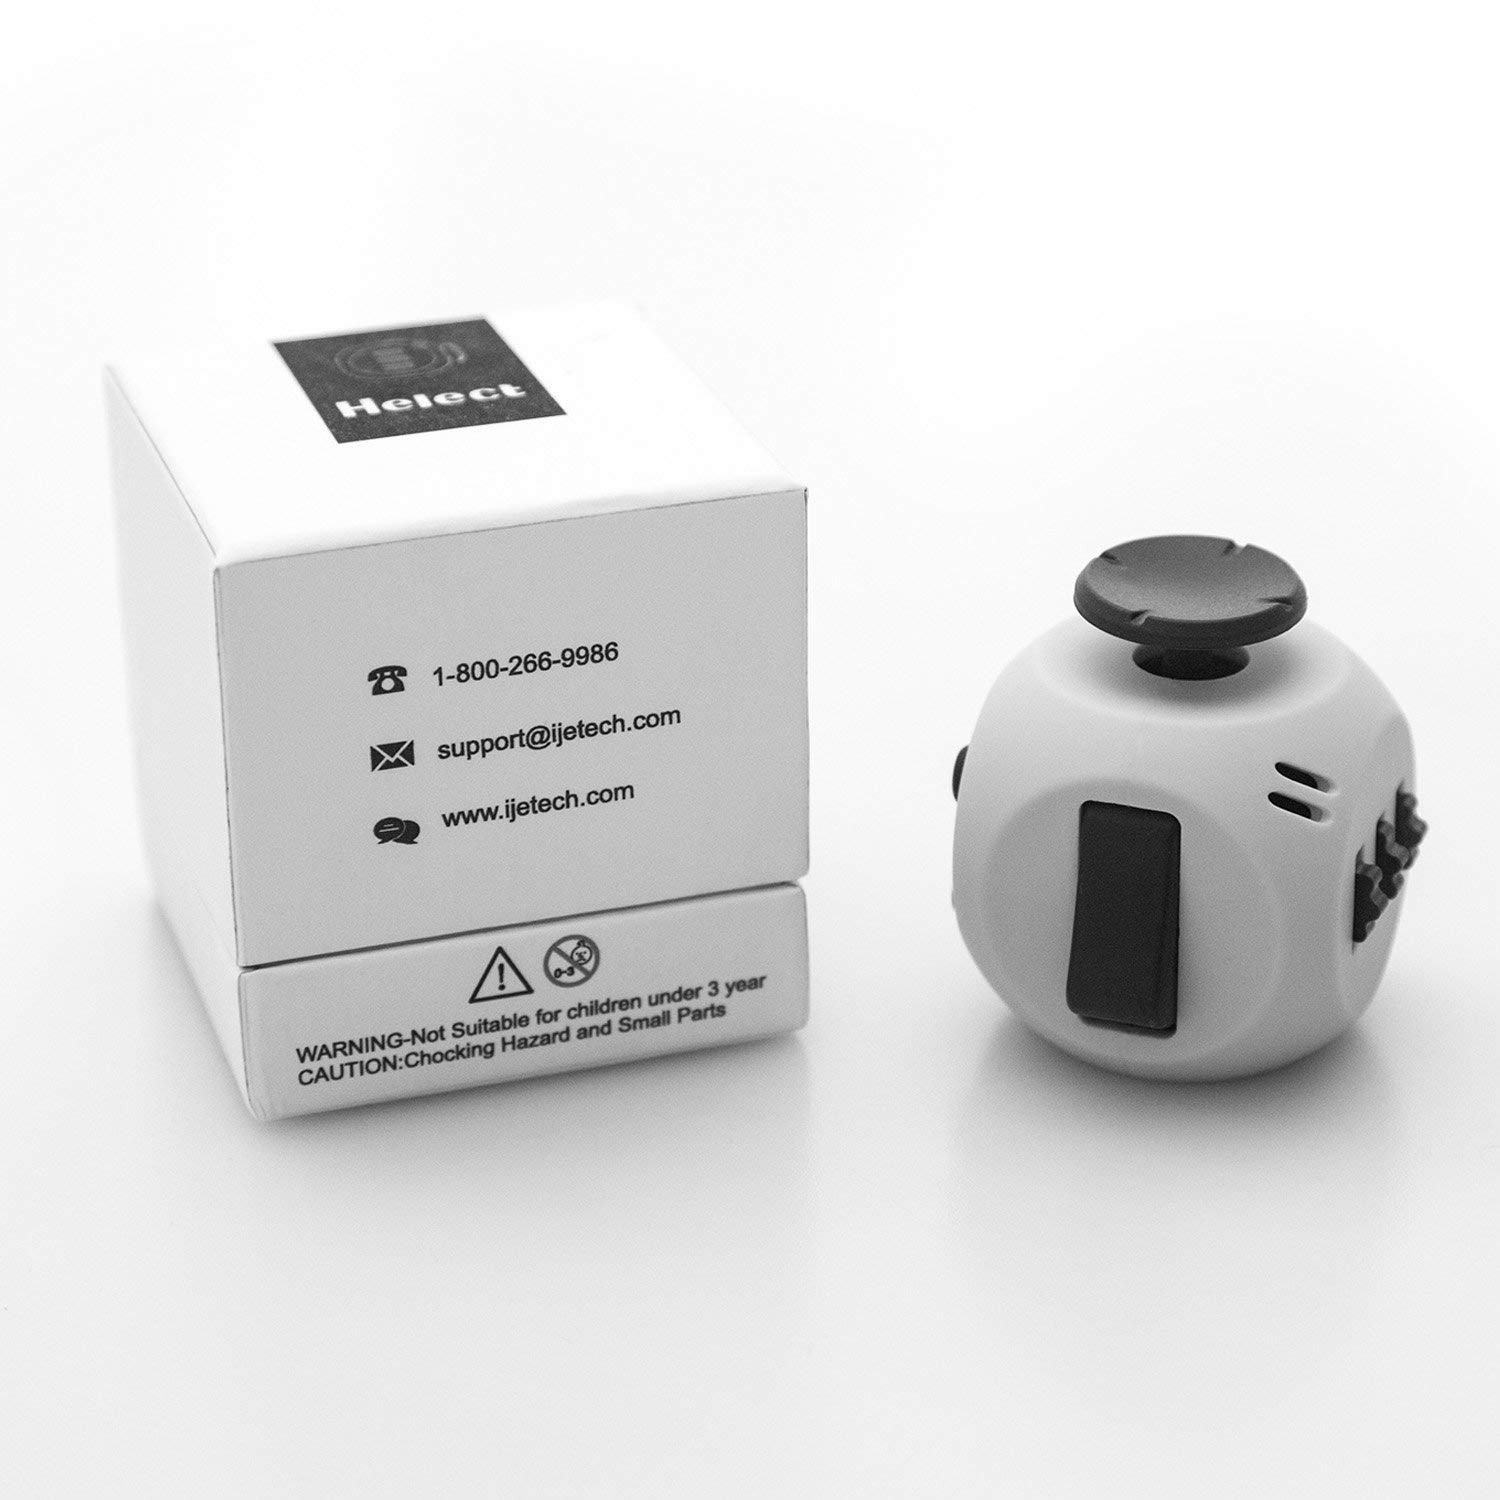 Fidget Cube - Helps increase focus and improves productivity while working.